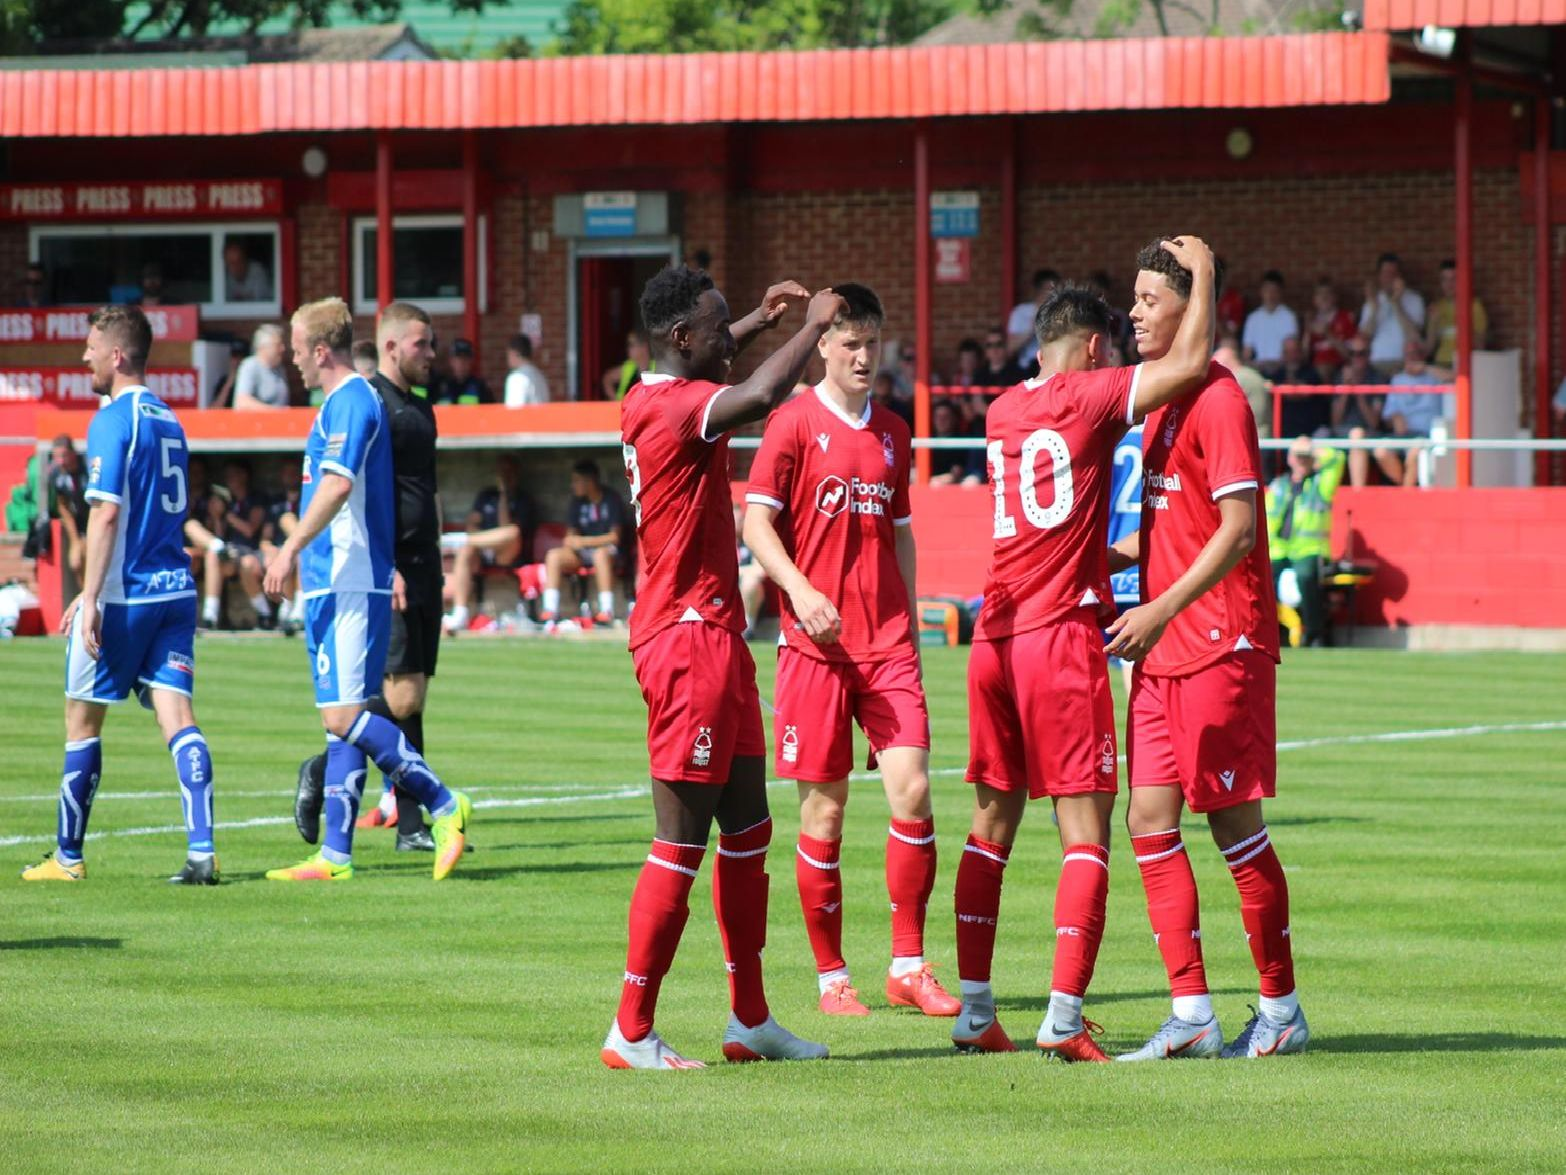 Nottingham Forest edged it 2-1 in their opening friendly against Alfreton Town.